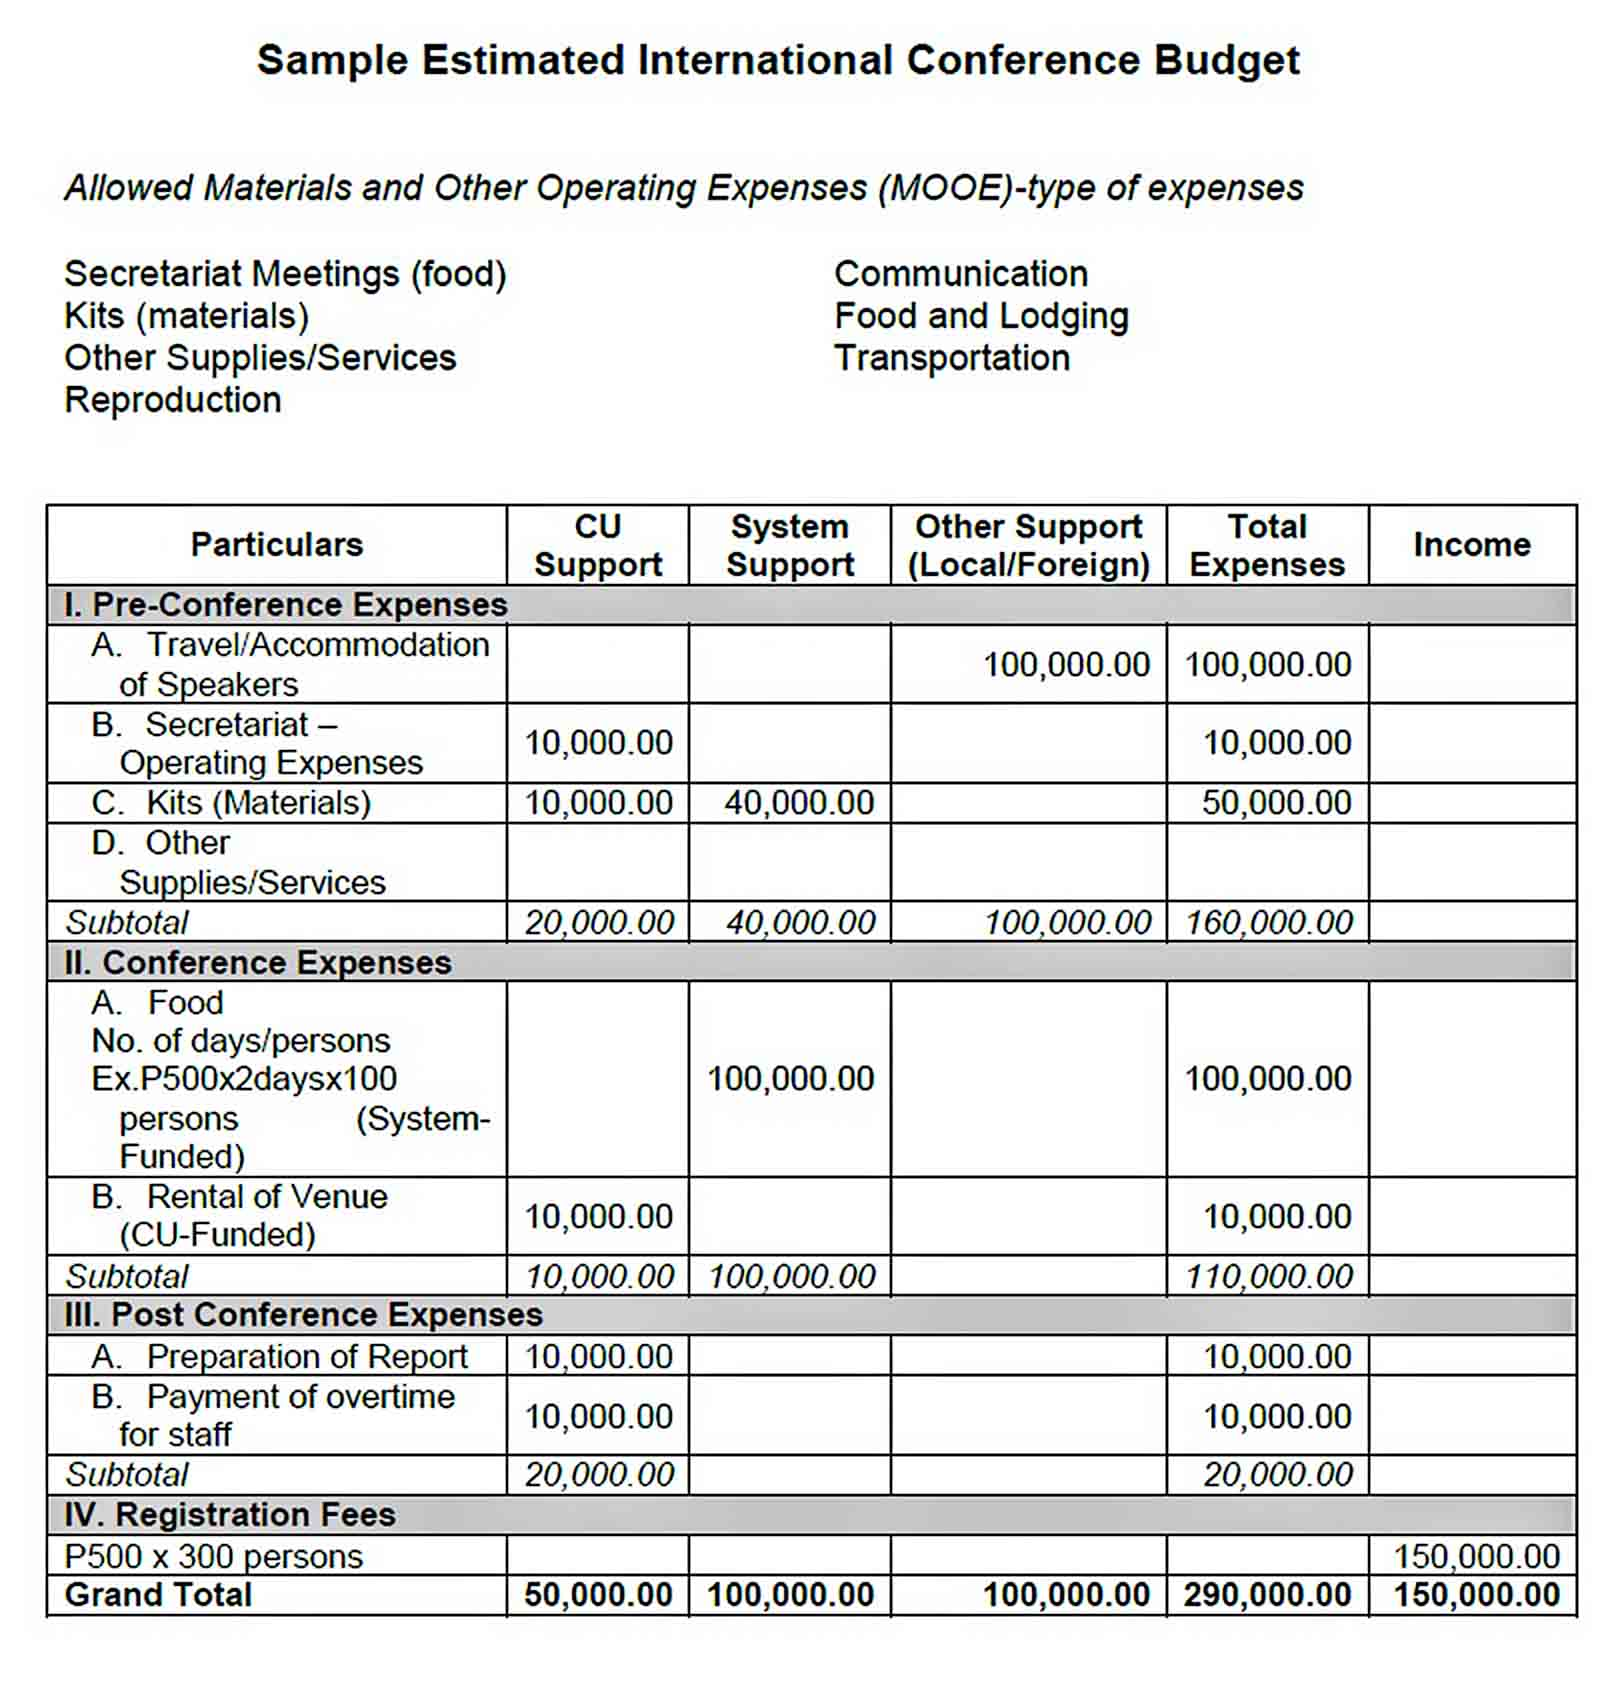 Sample Estimated International Conference Budget sample 1